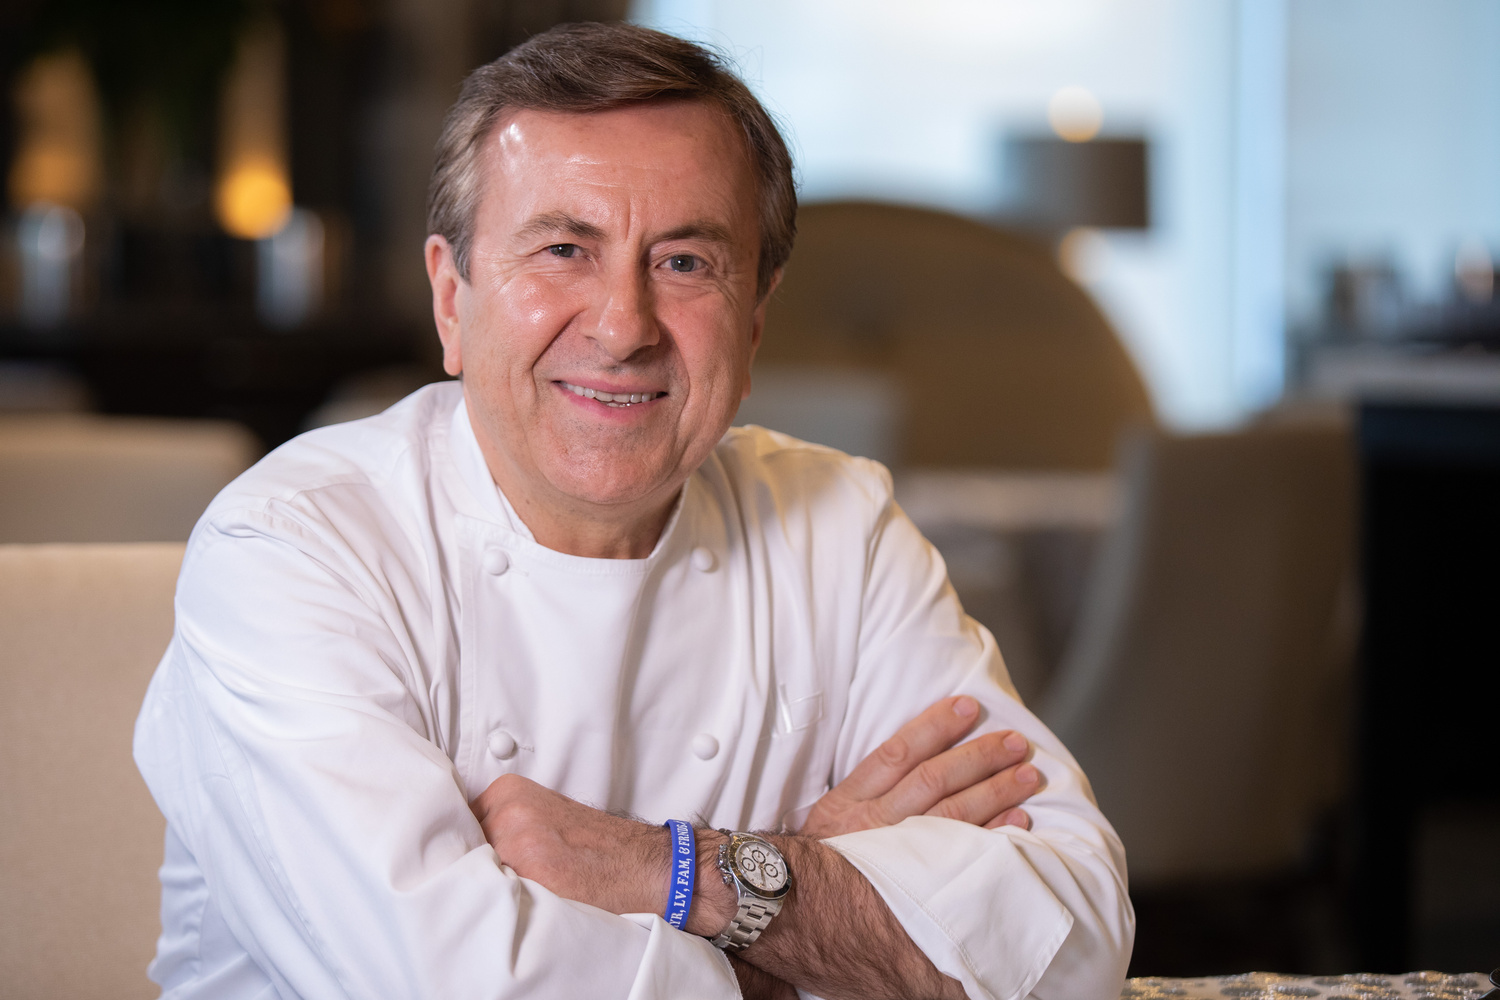 Chef Daniel Boulud by David Stephen Kalonick